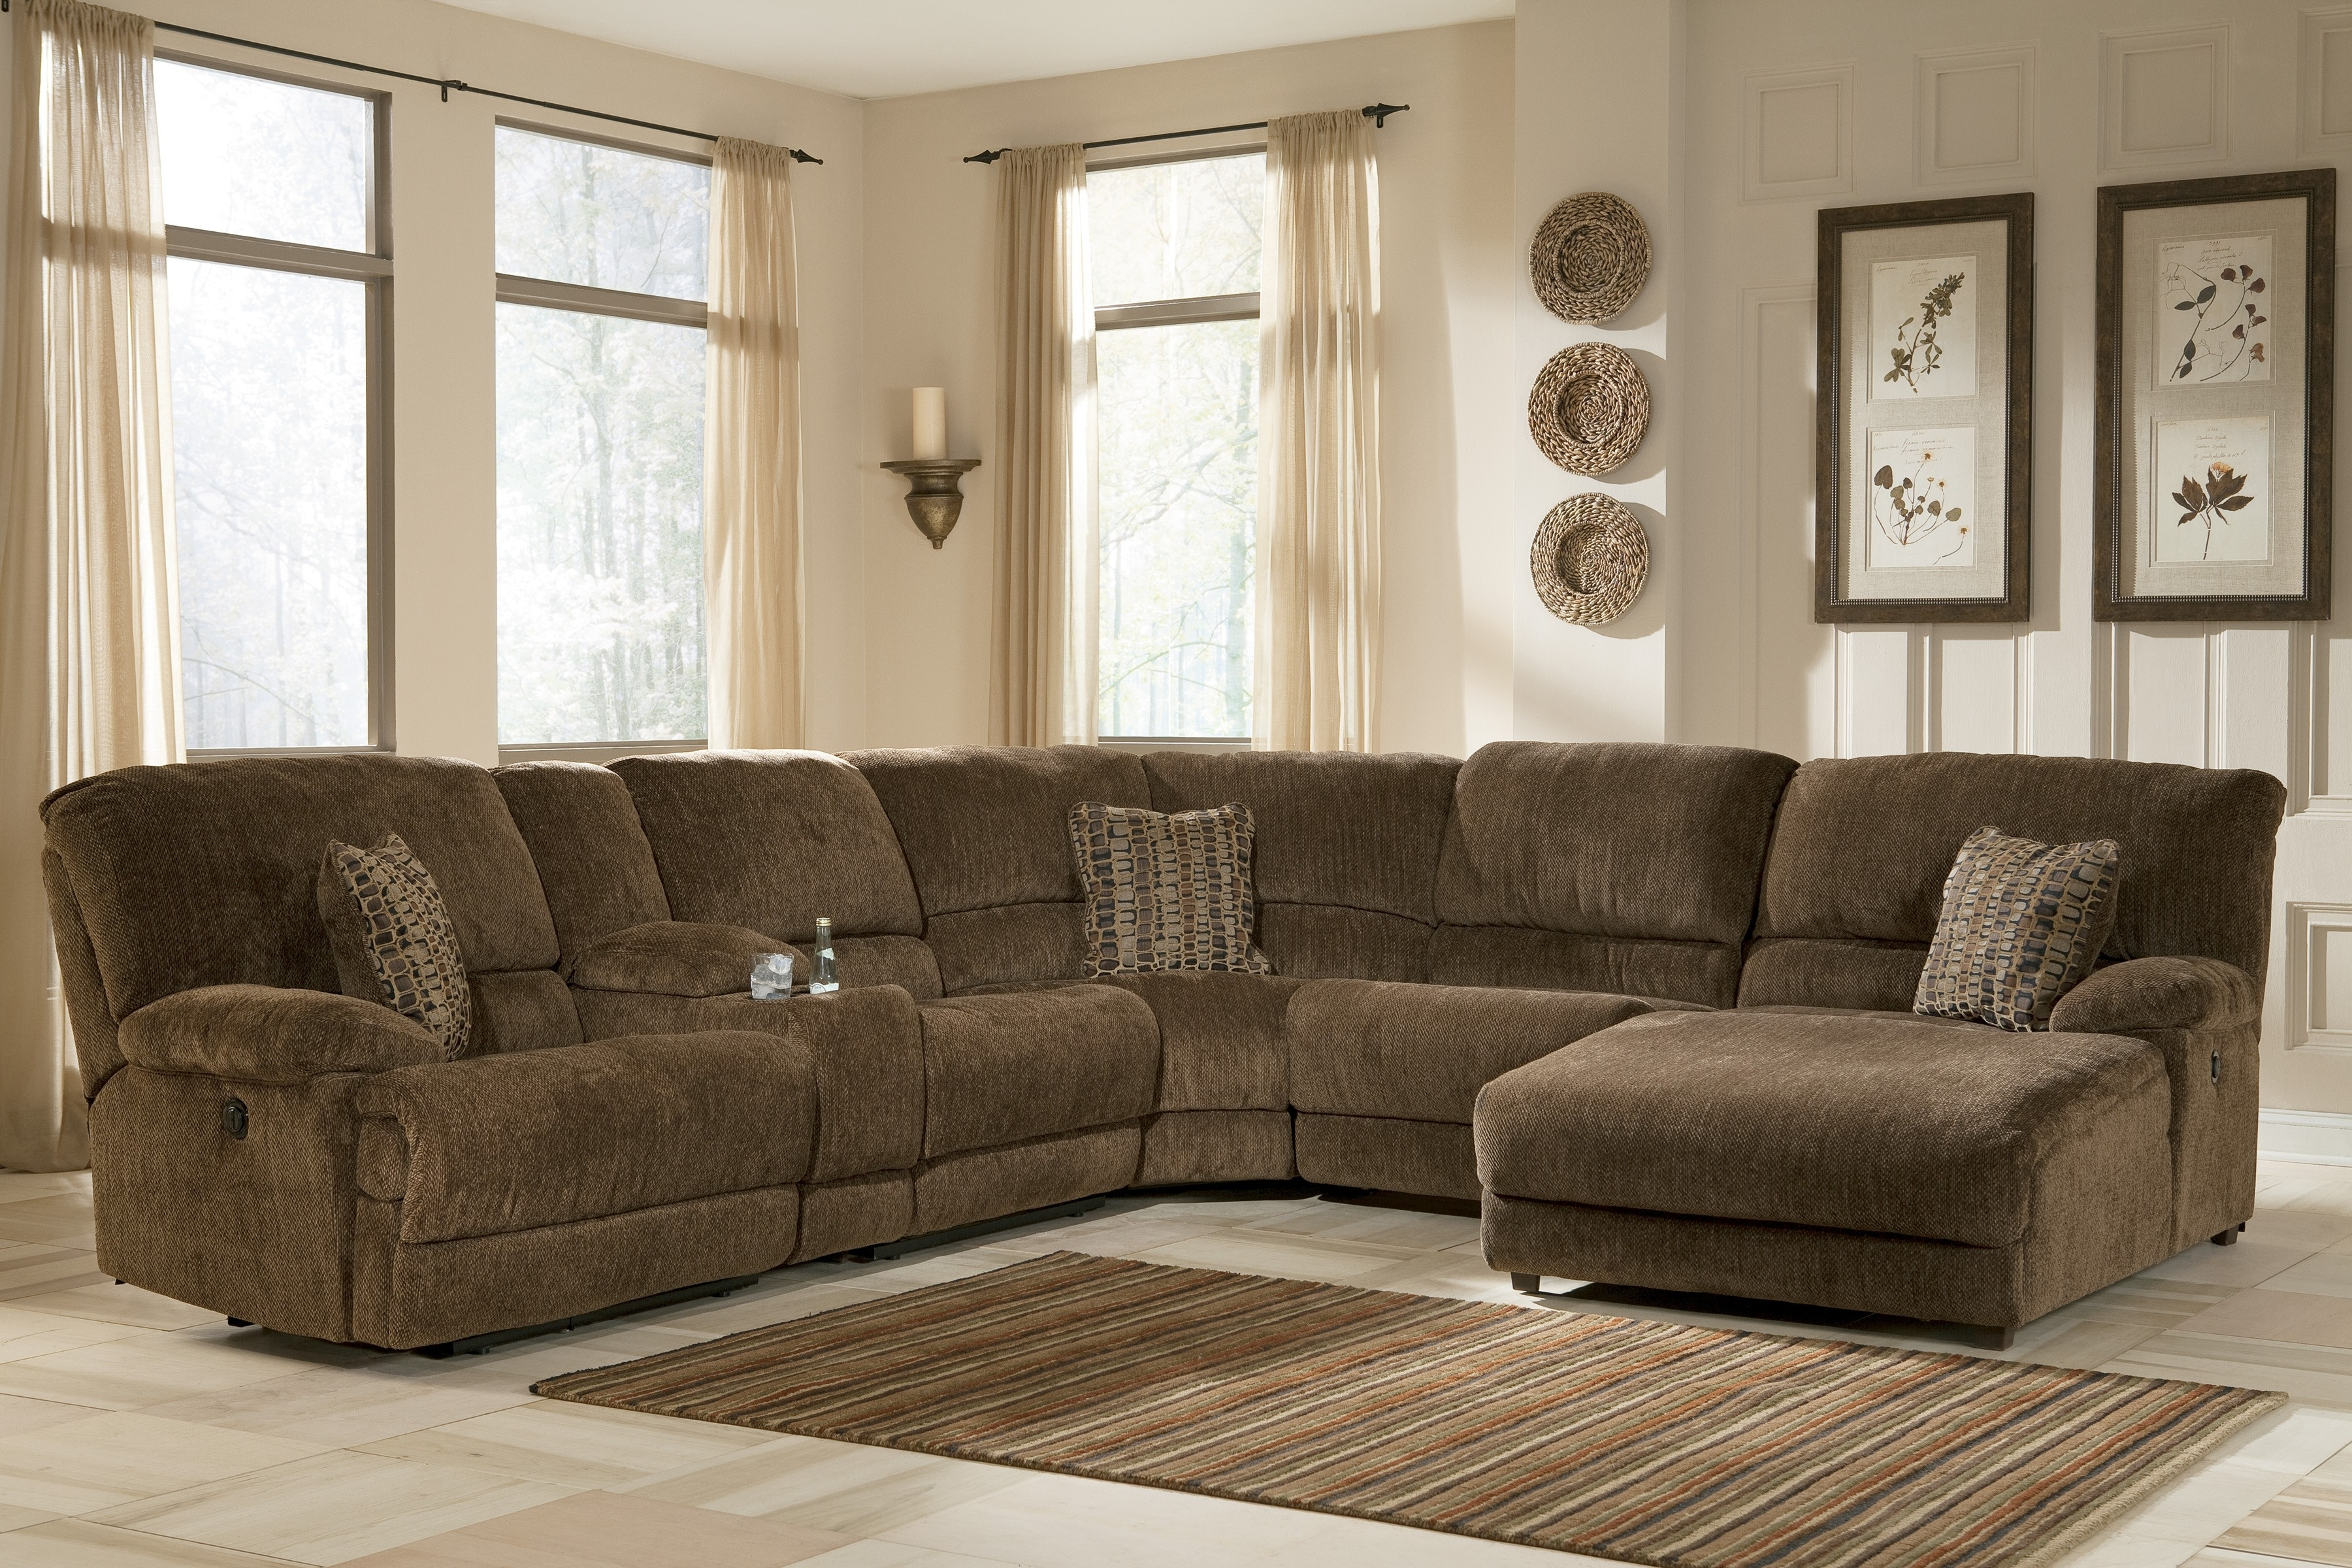 Reclining Sectionals With Chaise With Well Known Natuzzi Leather Reclining Sectional Big Softie Chair White Leather (View 10 of 15)